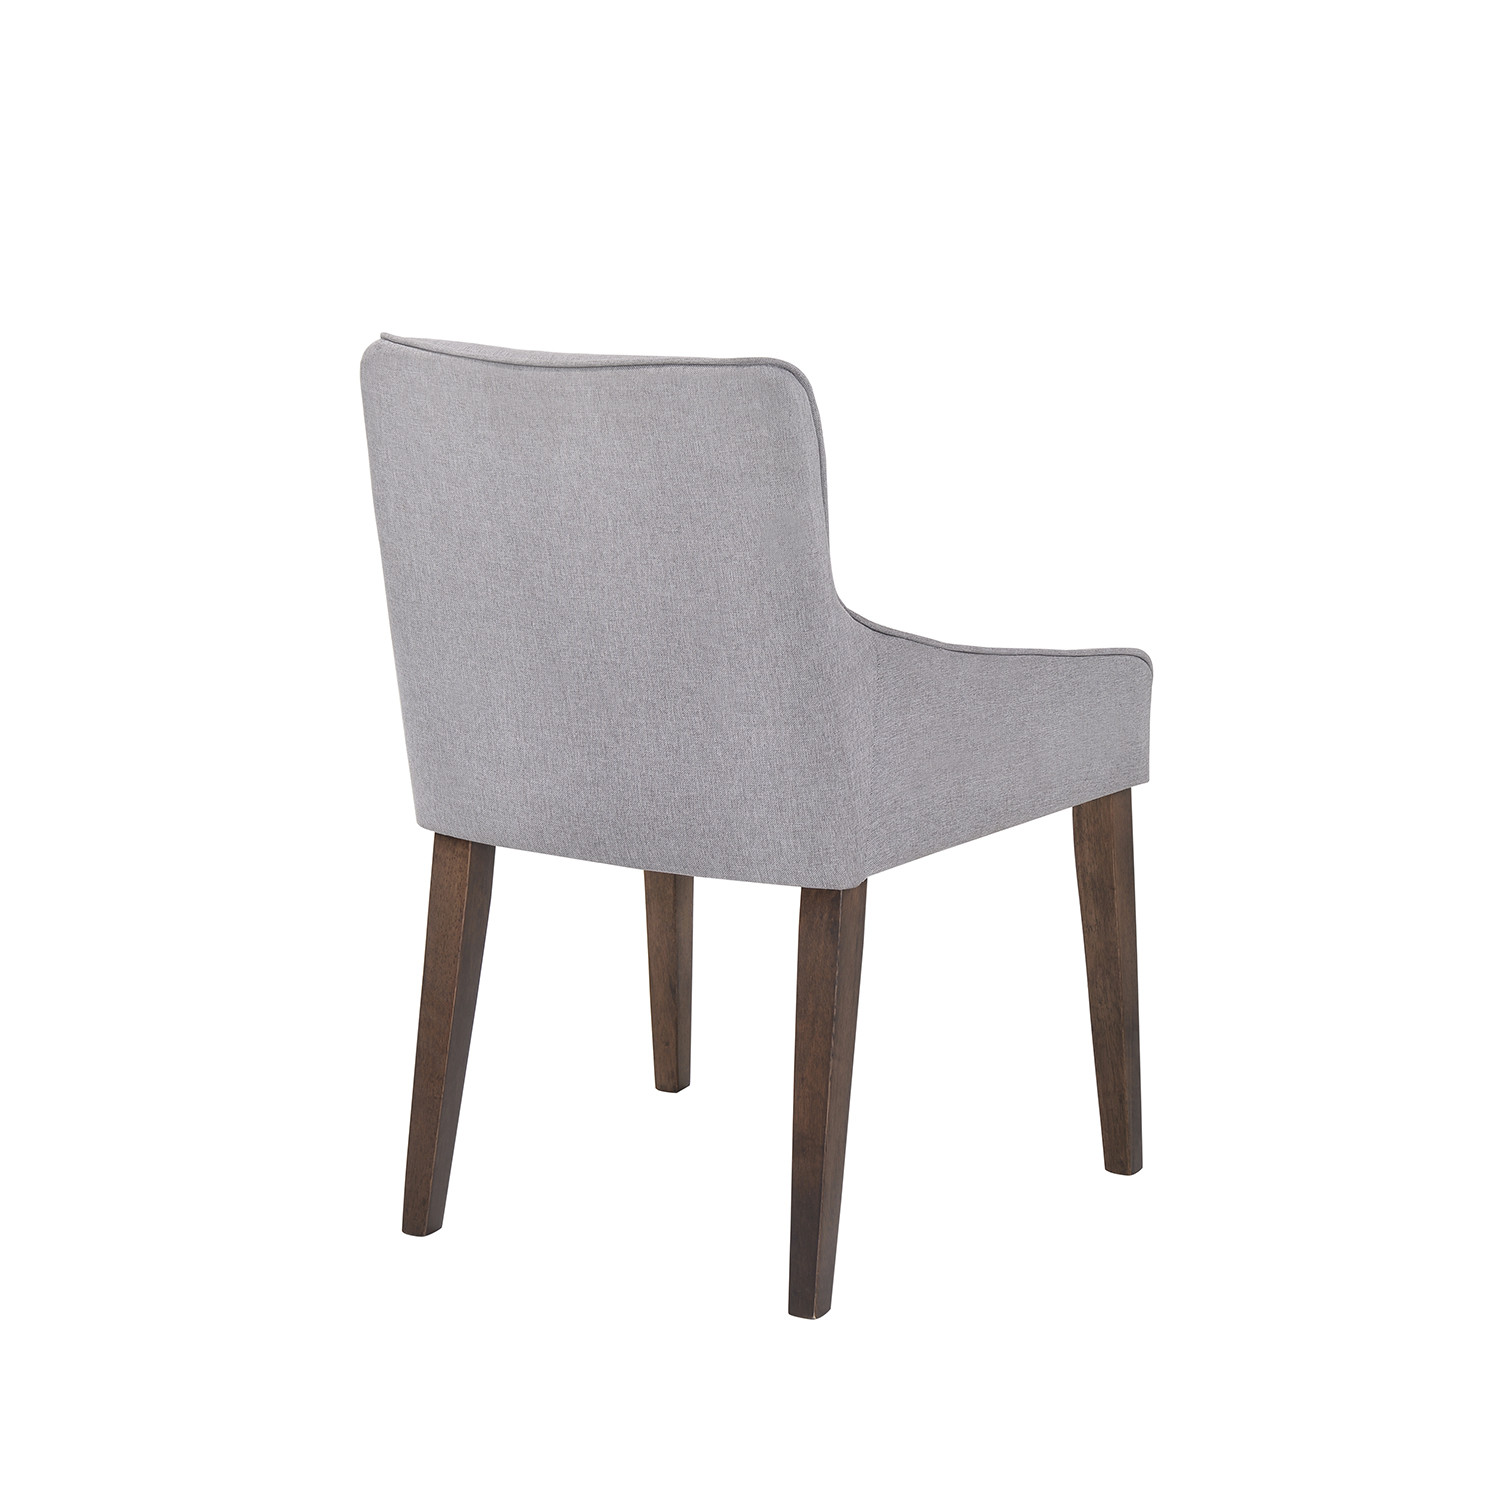 Ellen Dining Side Chair Set of 2 Charcoal Omax  : 7d14f1a6b94d92ab0907f6f45c1a2164large from www.touchofmodern.com size 1500 x 1500 jpeg 168kB